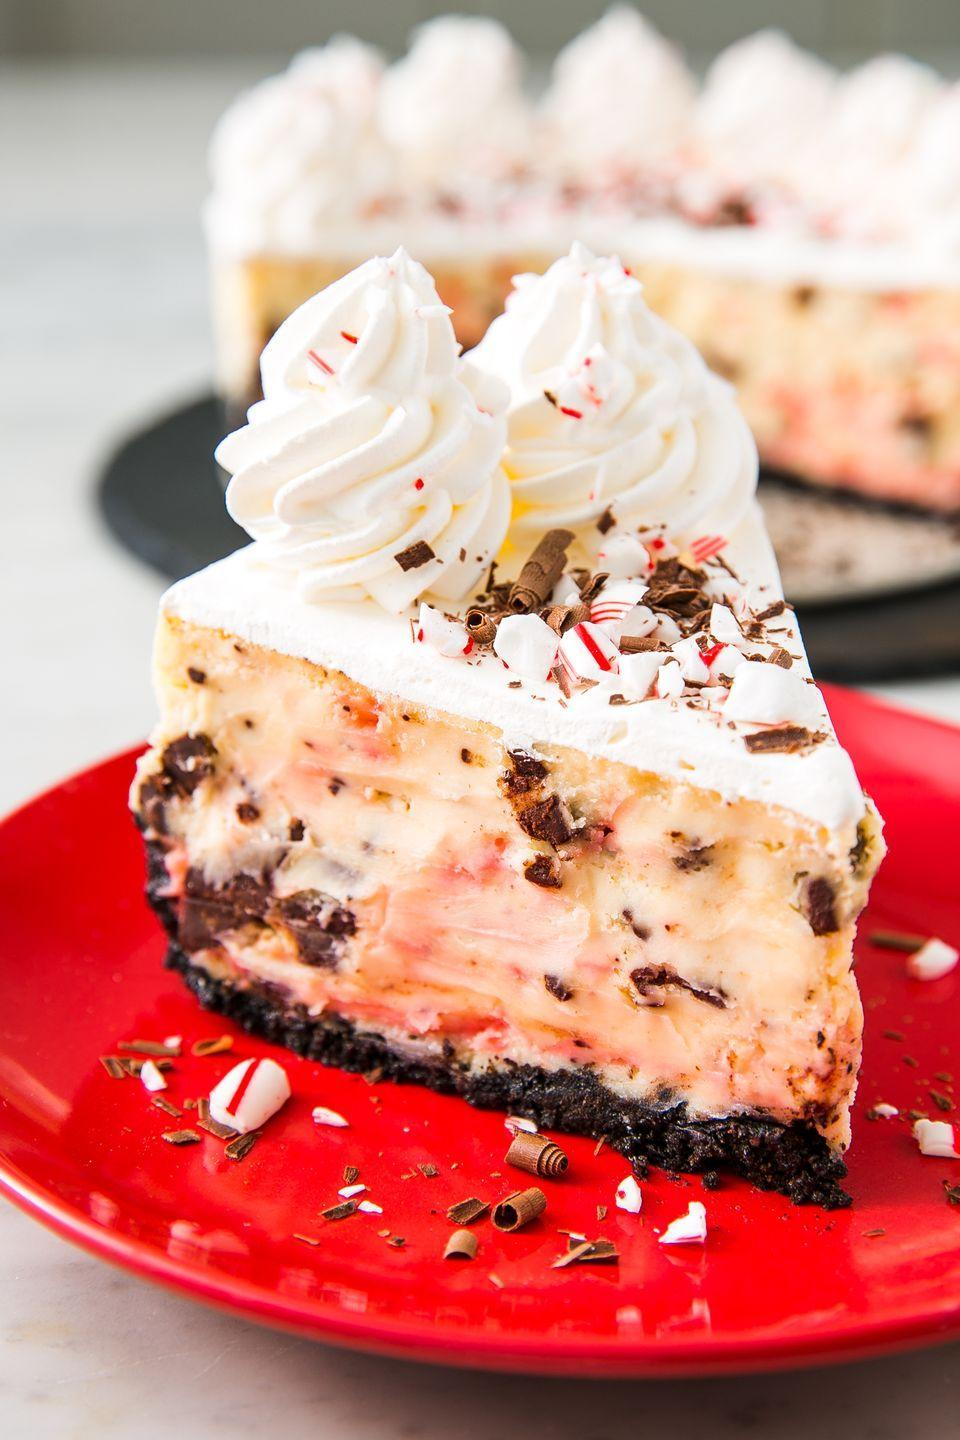 """<p>Winter means all peppermint everything.</p><p>Get the recipe from <a href=""""https://www.delish.com/holiday-recipes/christmas/a25441818/peppermint-bark-cheesecake-recipe/"""" rel=""""nofollow noopener"""" target=""""_blank"""" data-ylk=""""slk:Delish"""" class=""""link rapid-noclick-resp"""">Delish</a>.</p>"""